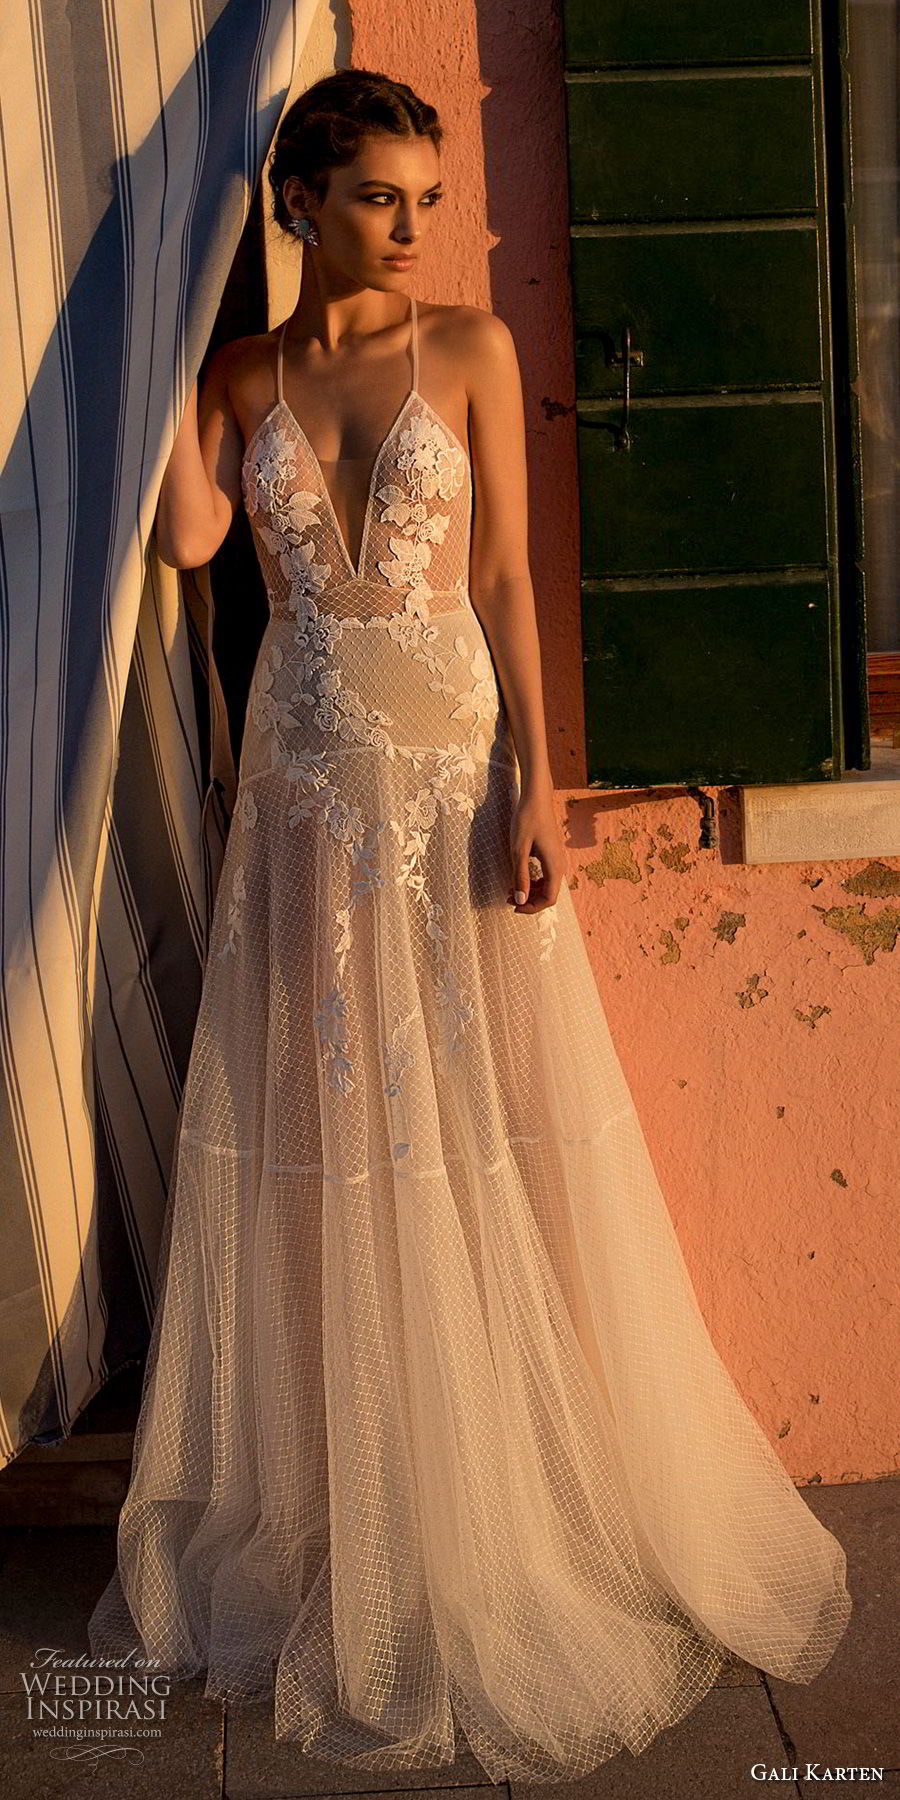 gali karten 2018 bridal spaghetti strap deep v neck heavily embellished bodice romantic soft a line wedding dress open scoop back sweep train (6) mv